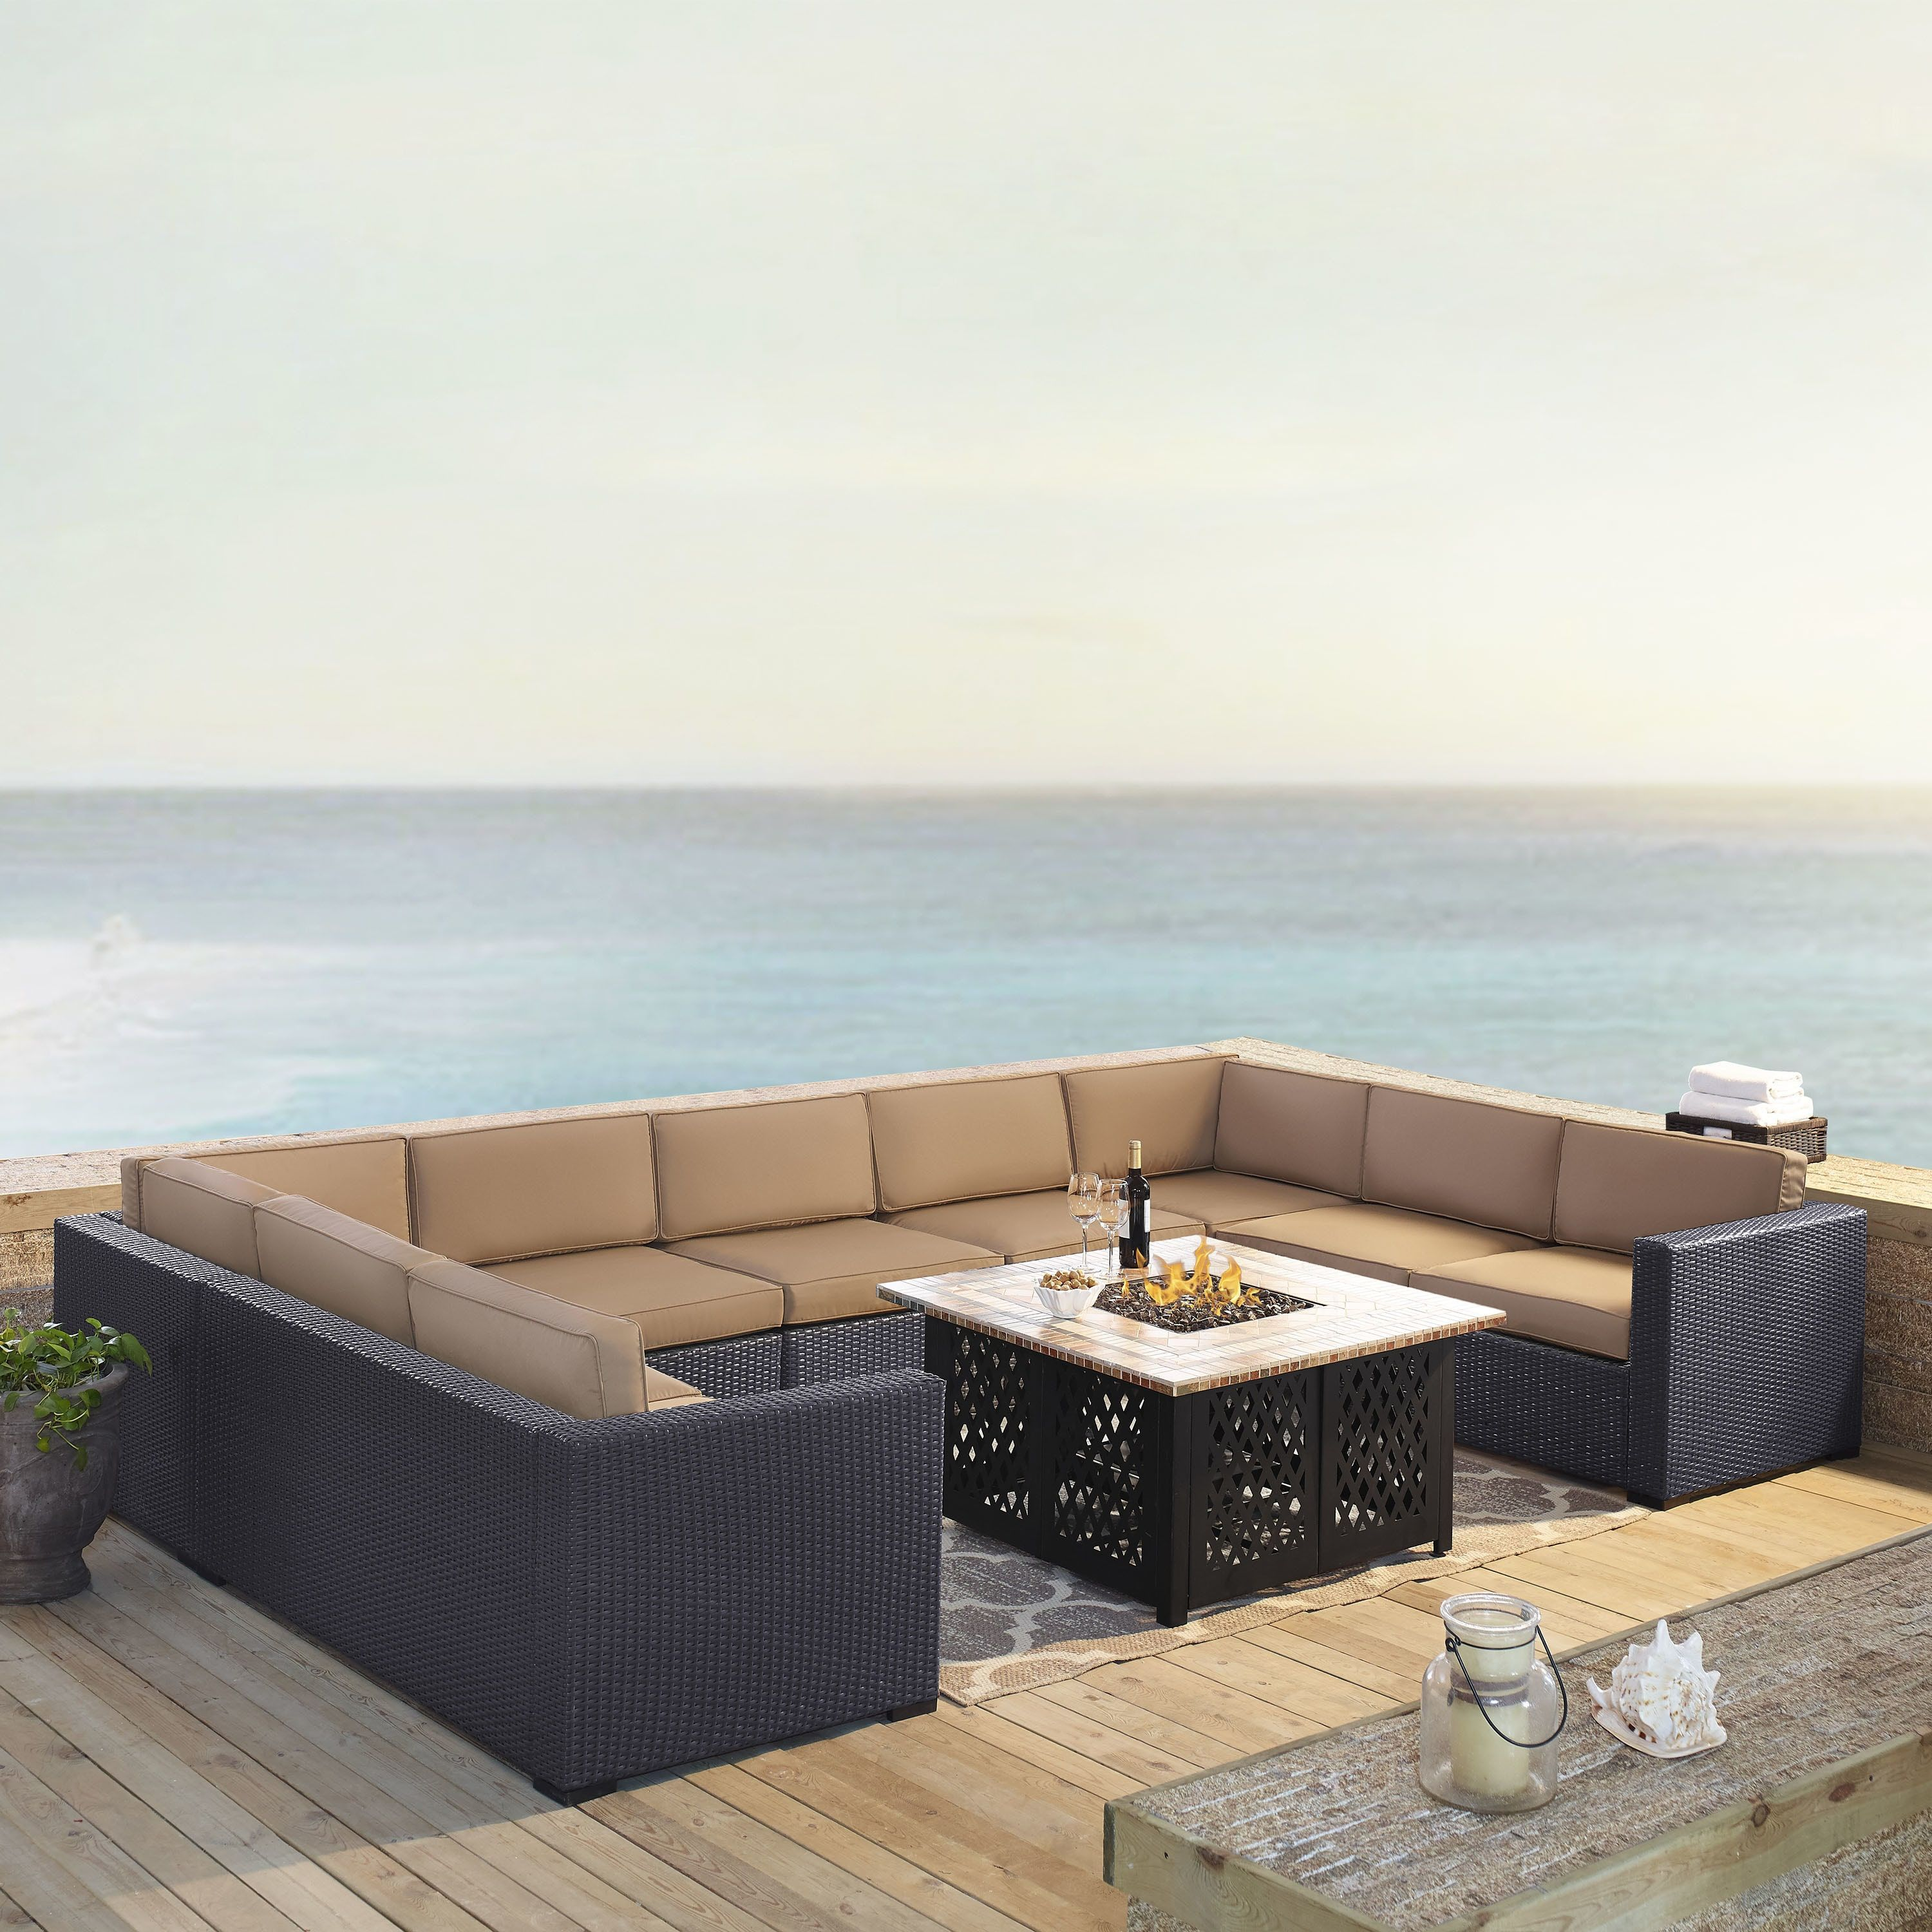 Crosley Furniture Biscayne Mist Wicker/ 6-piece Seating Set With 4 Loveseats, Armless Chair, and Tucson Fire Pit